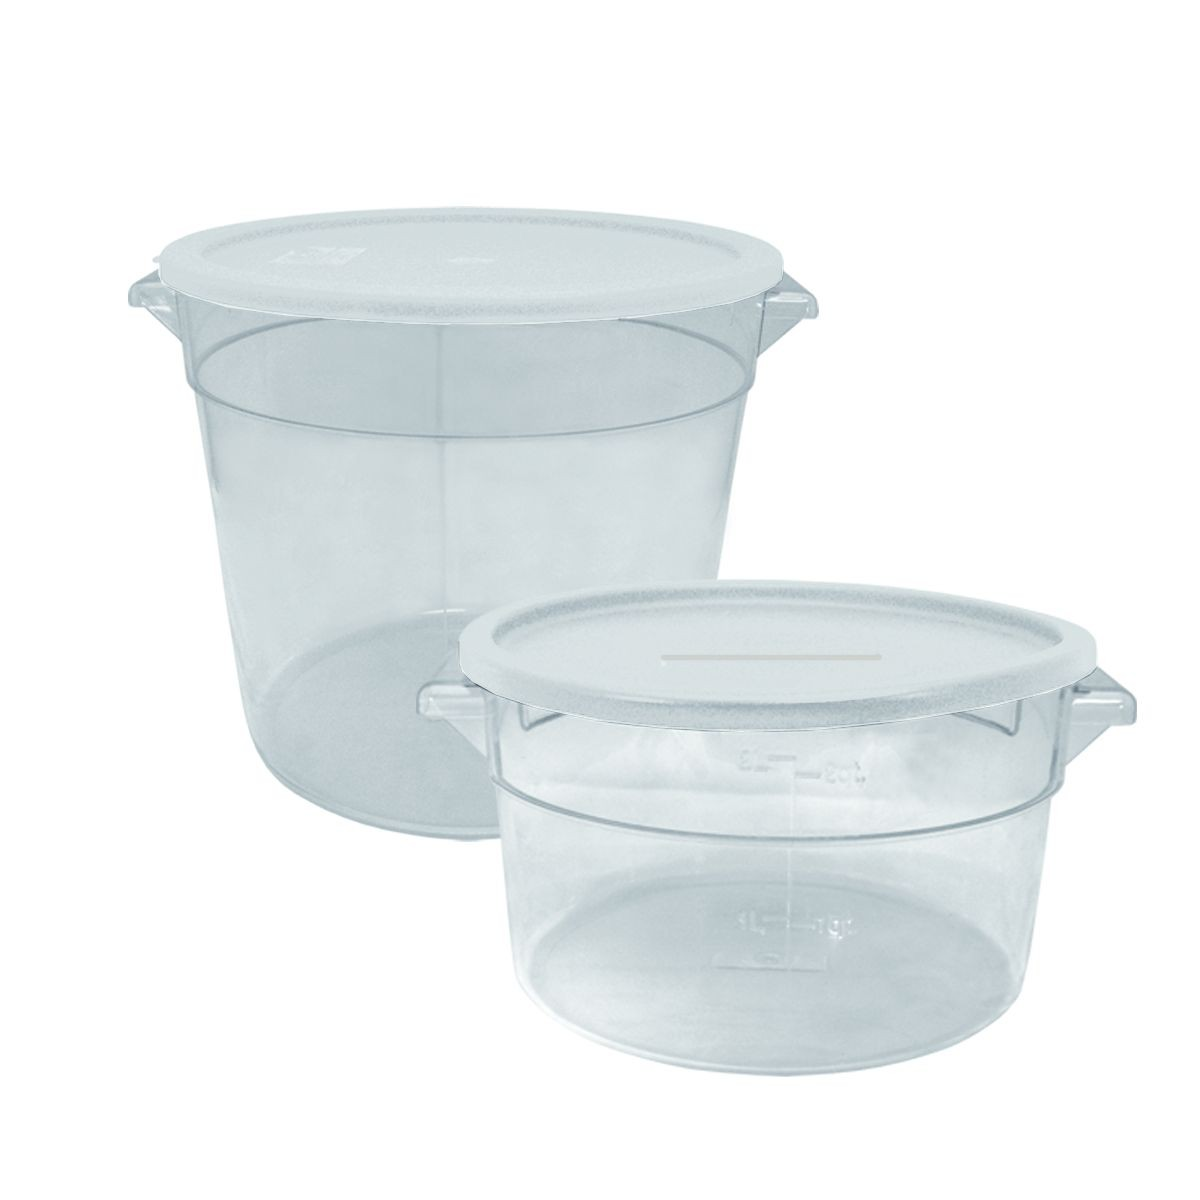 Update International SCR-8PC Round Polycarbonate 8 Qt. Storage Container